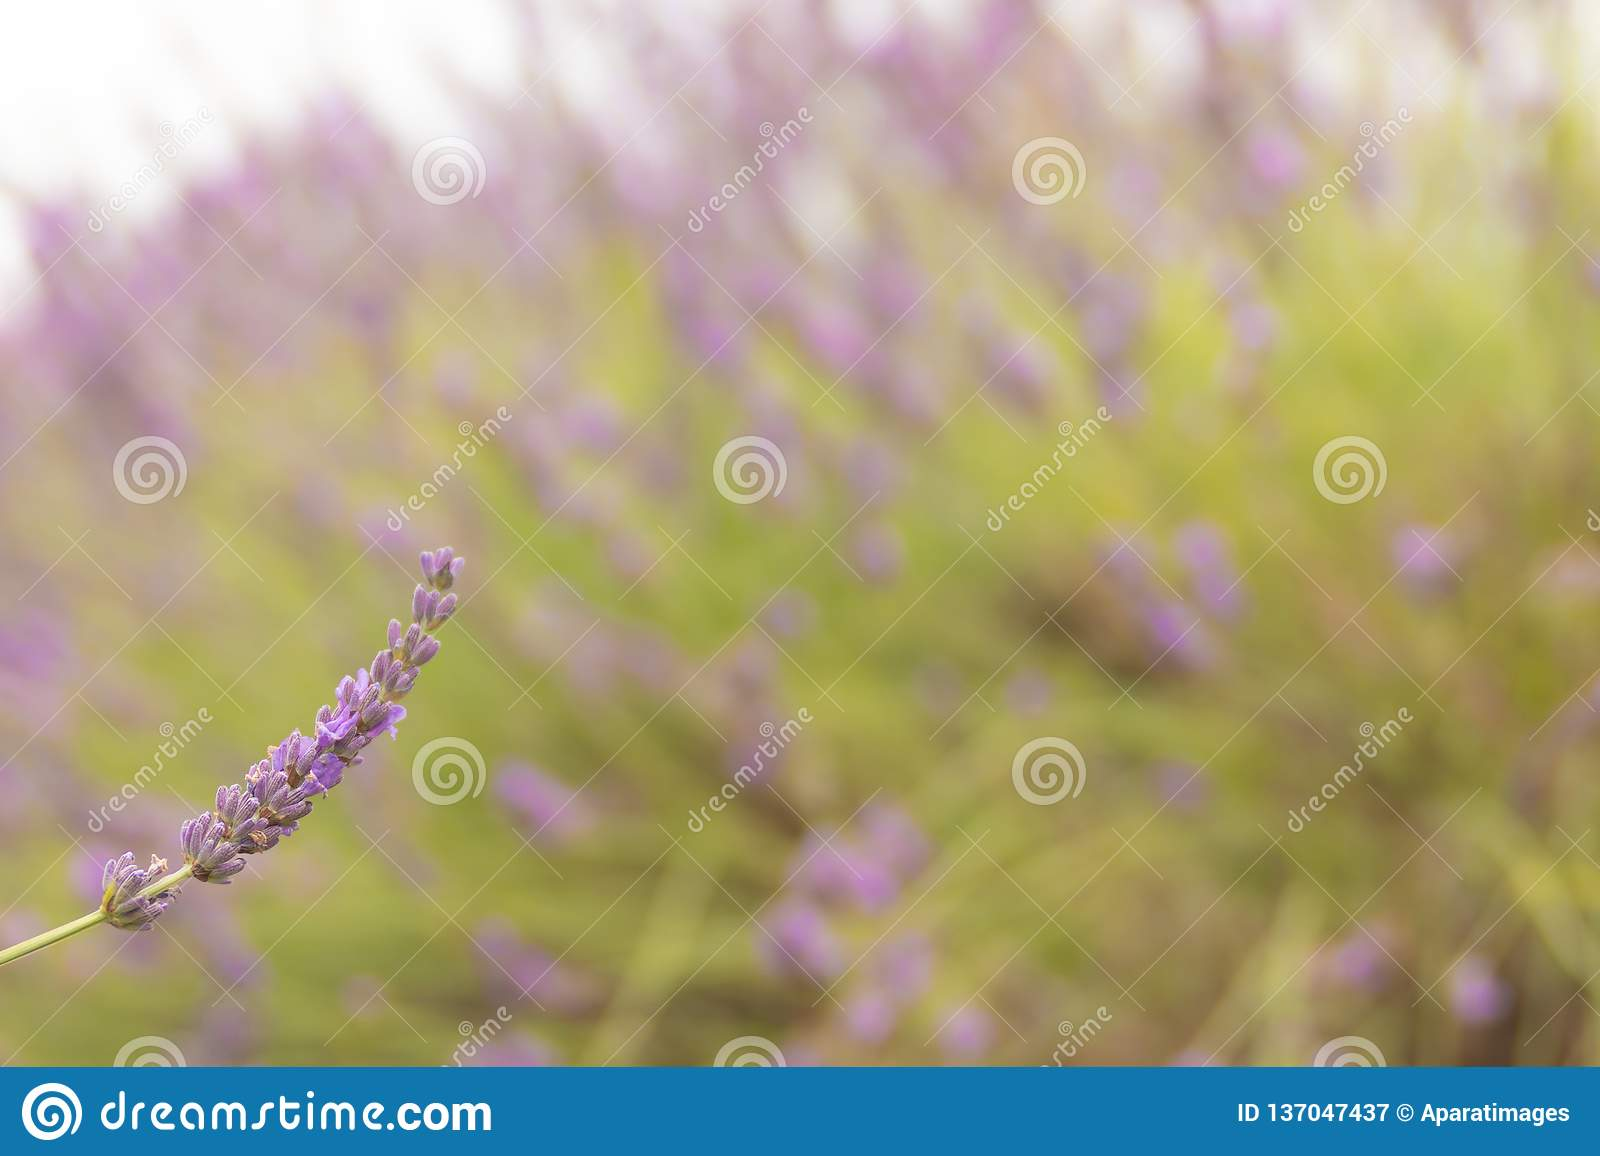 Lavender field with out of focus background